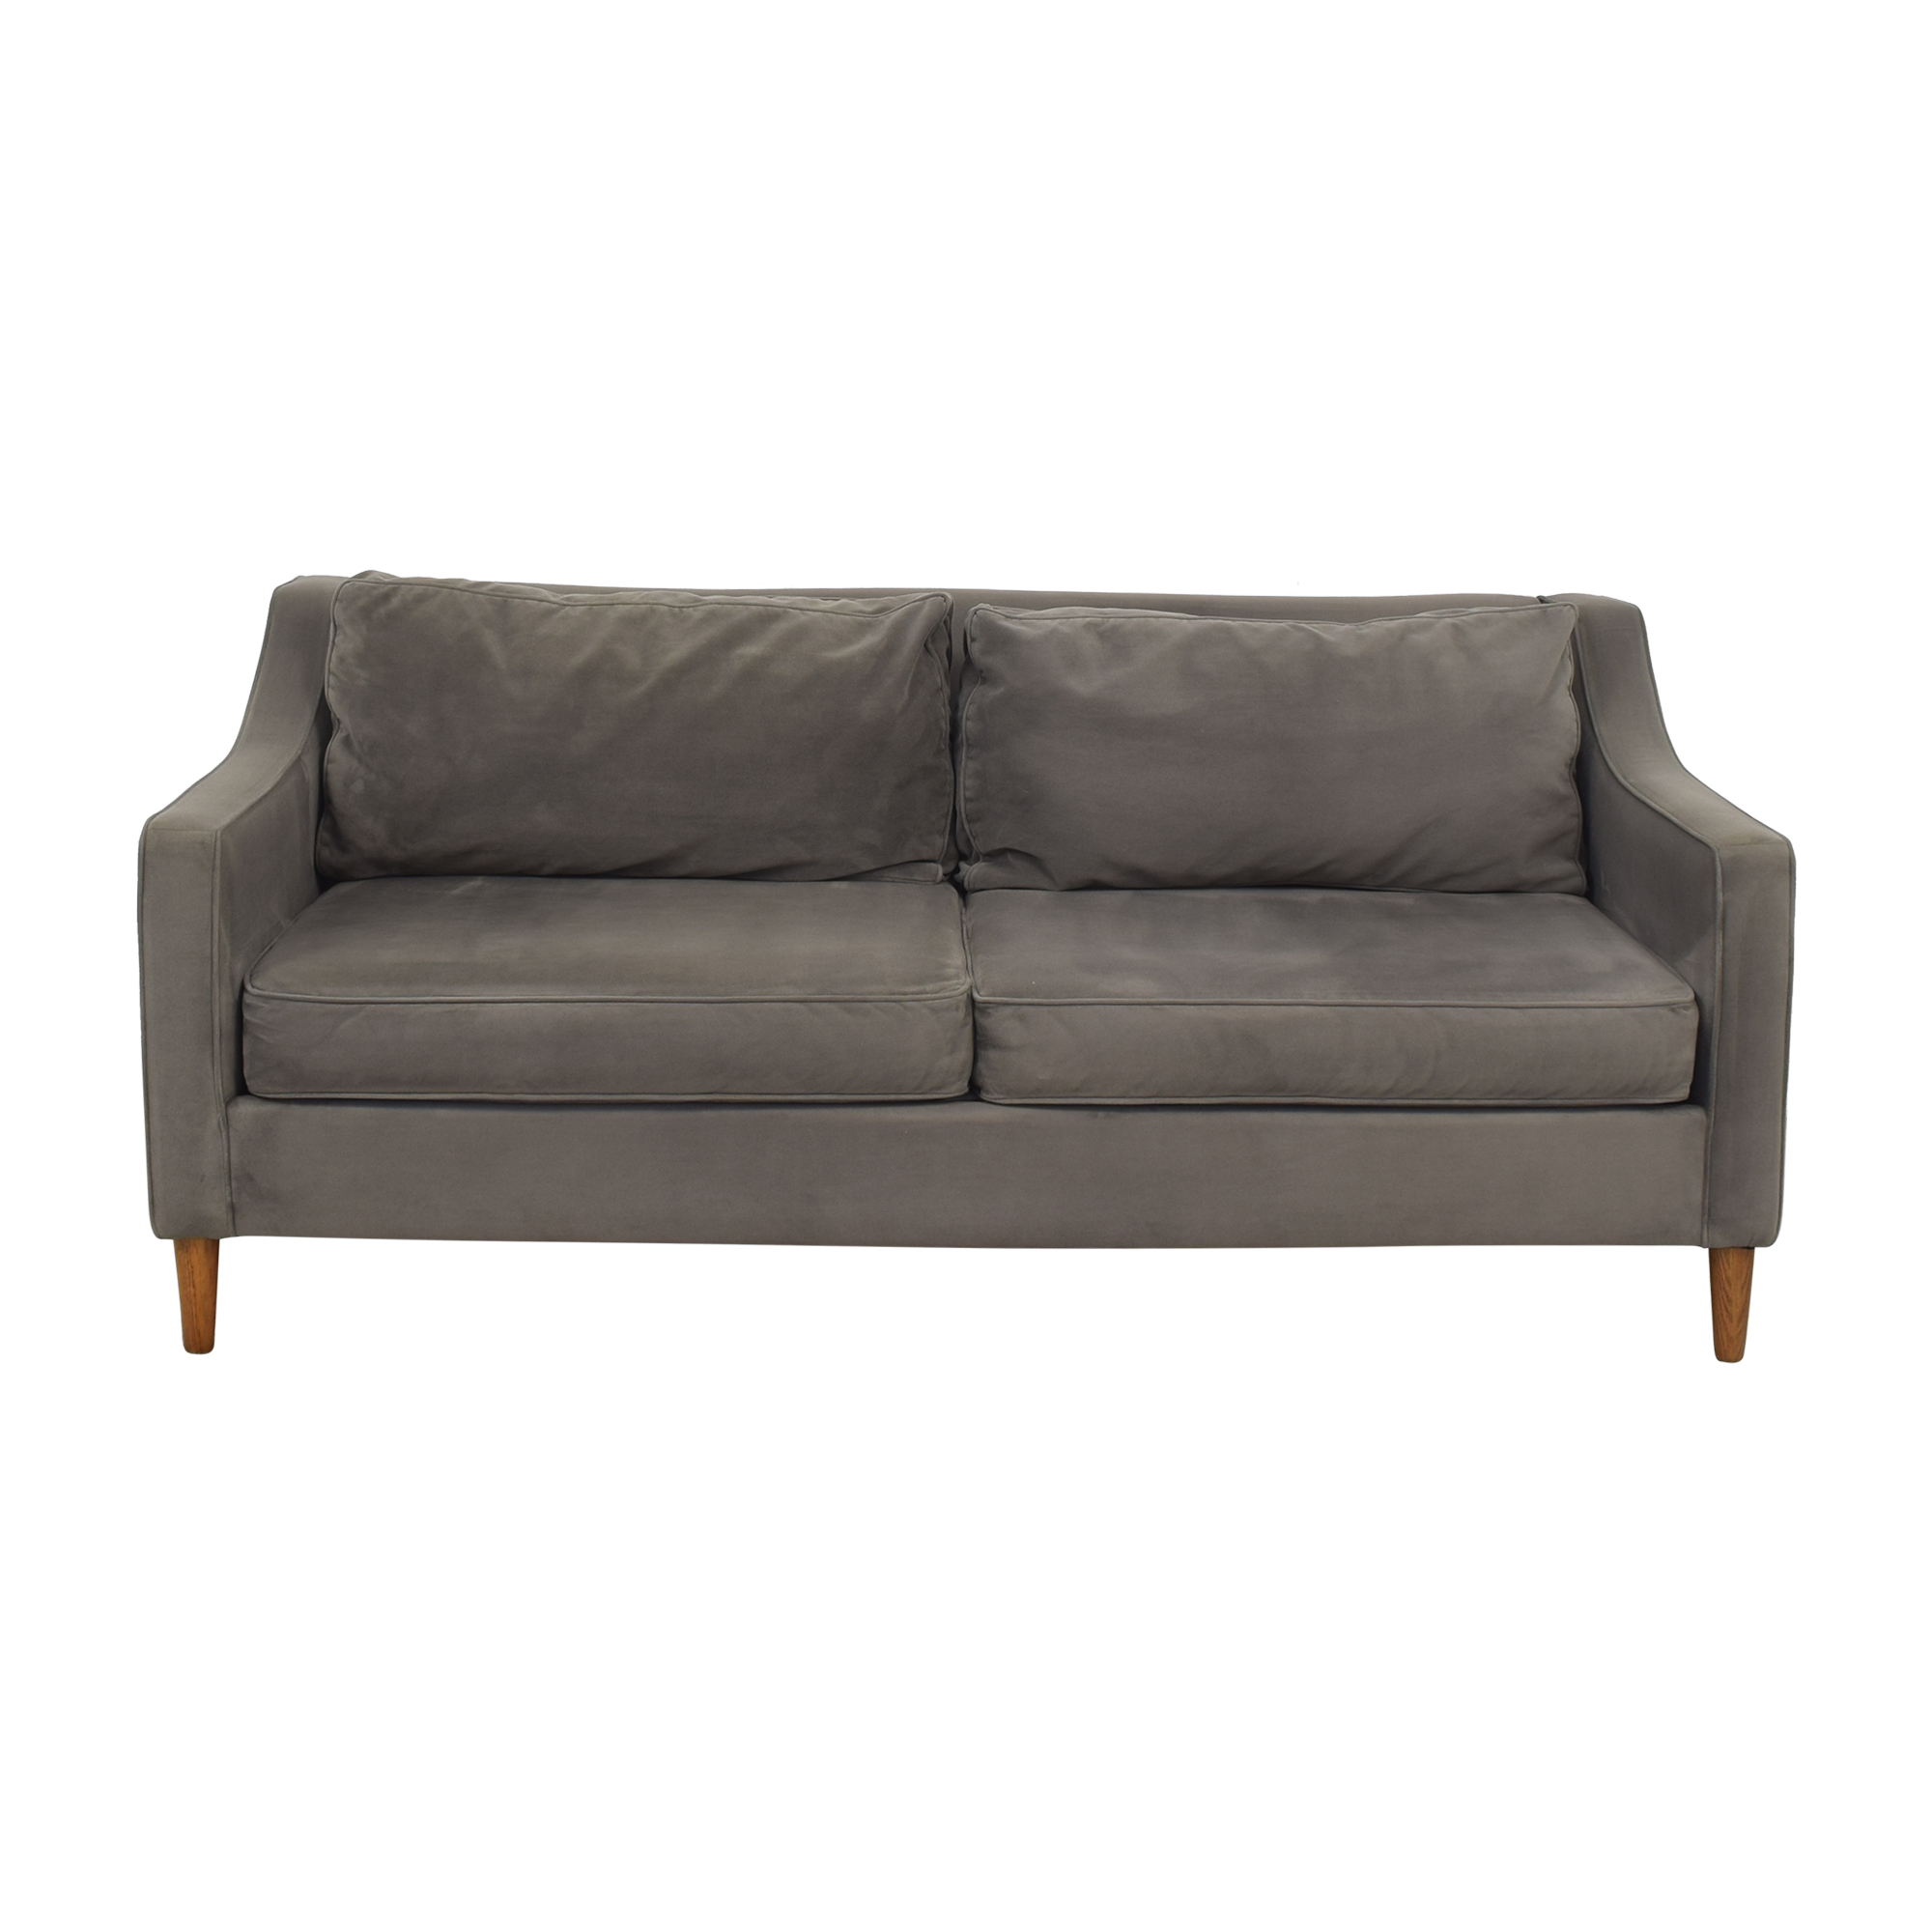 buy West Elm Paidge Sofa West Elm Sofas